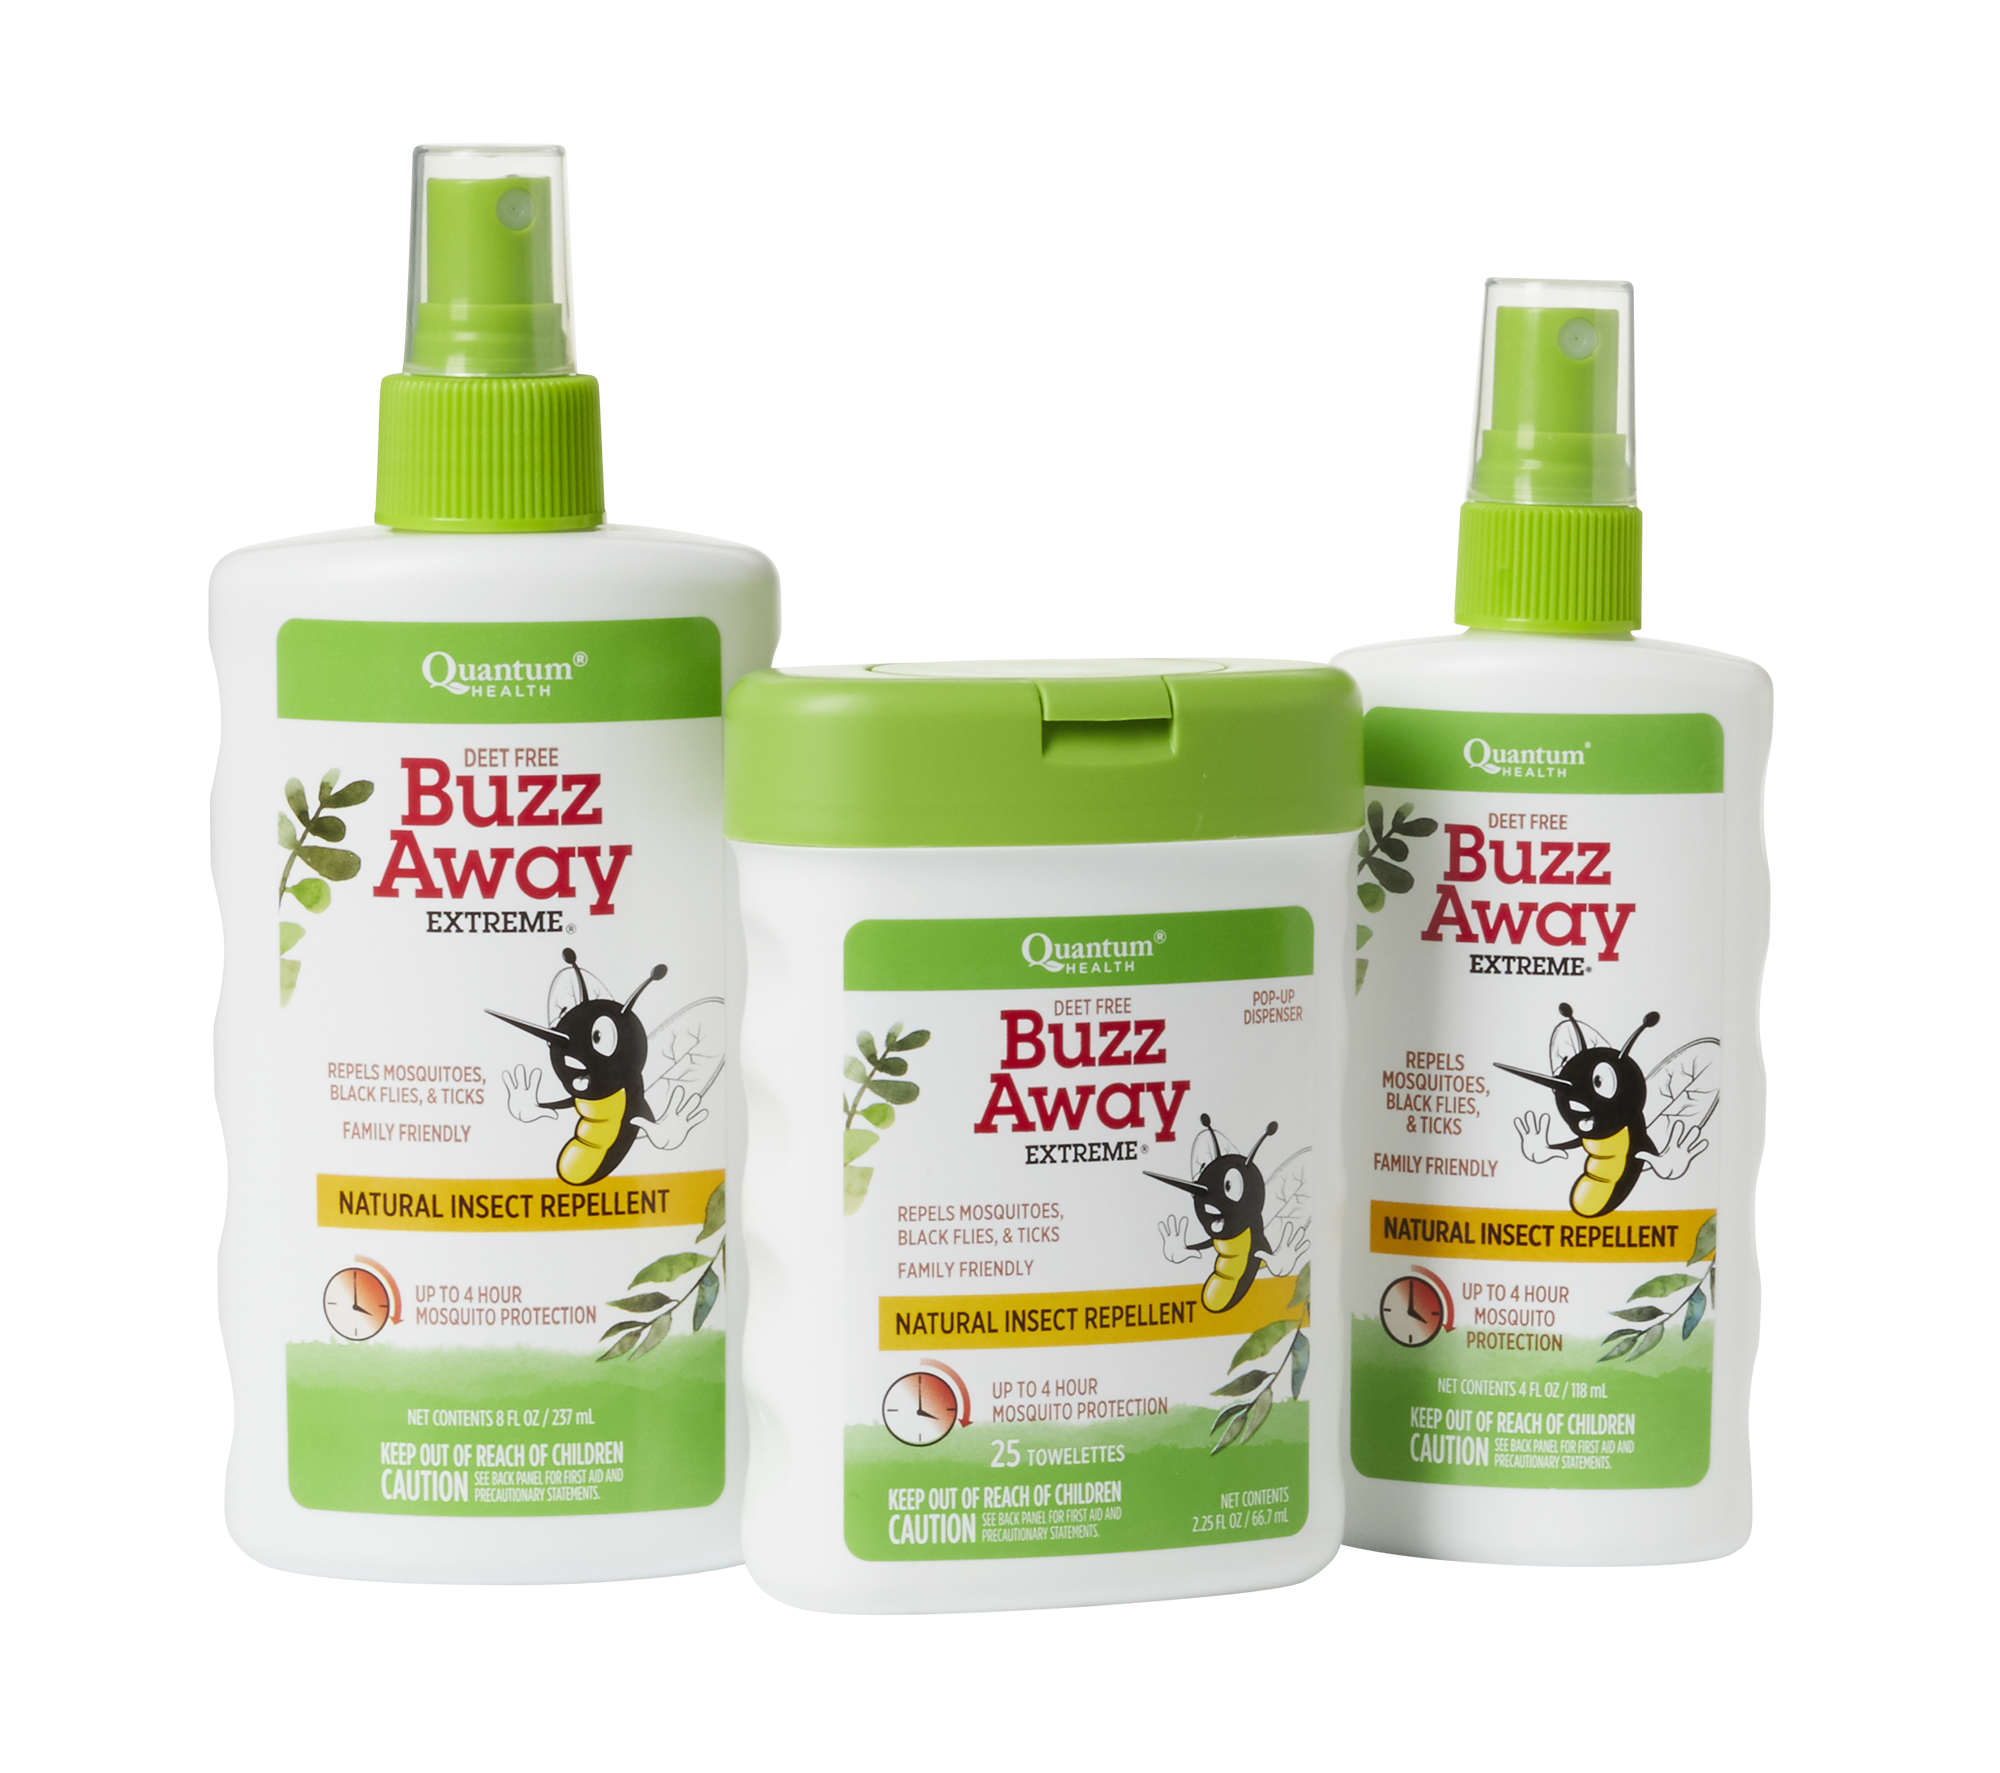 Gear up with Buzz Away products!